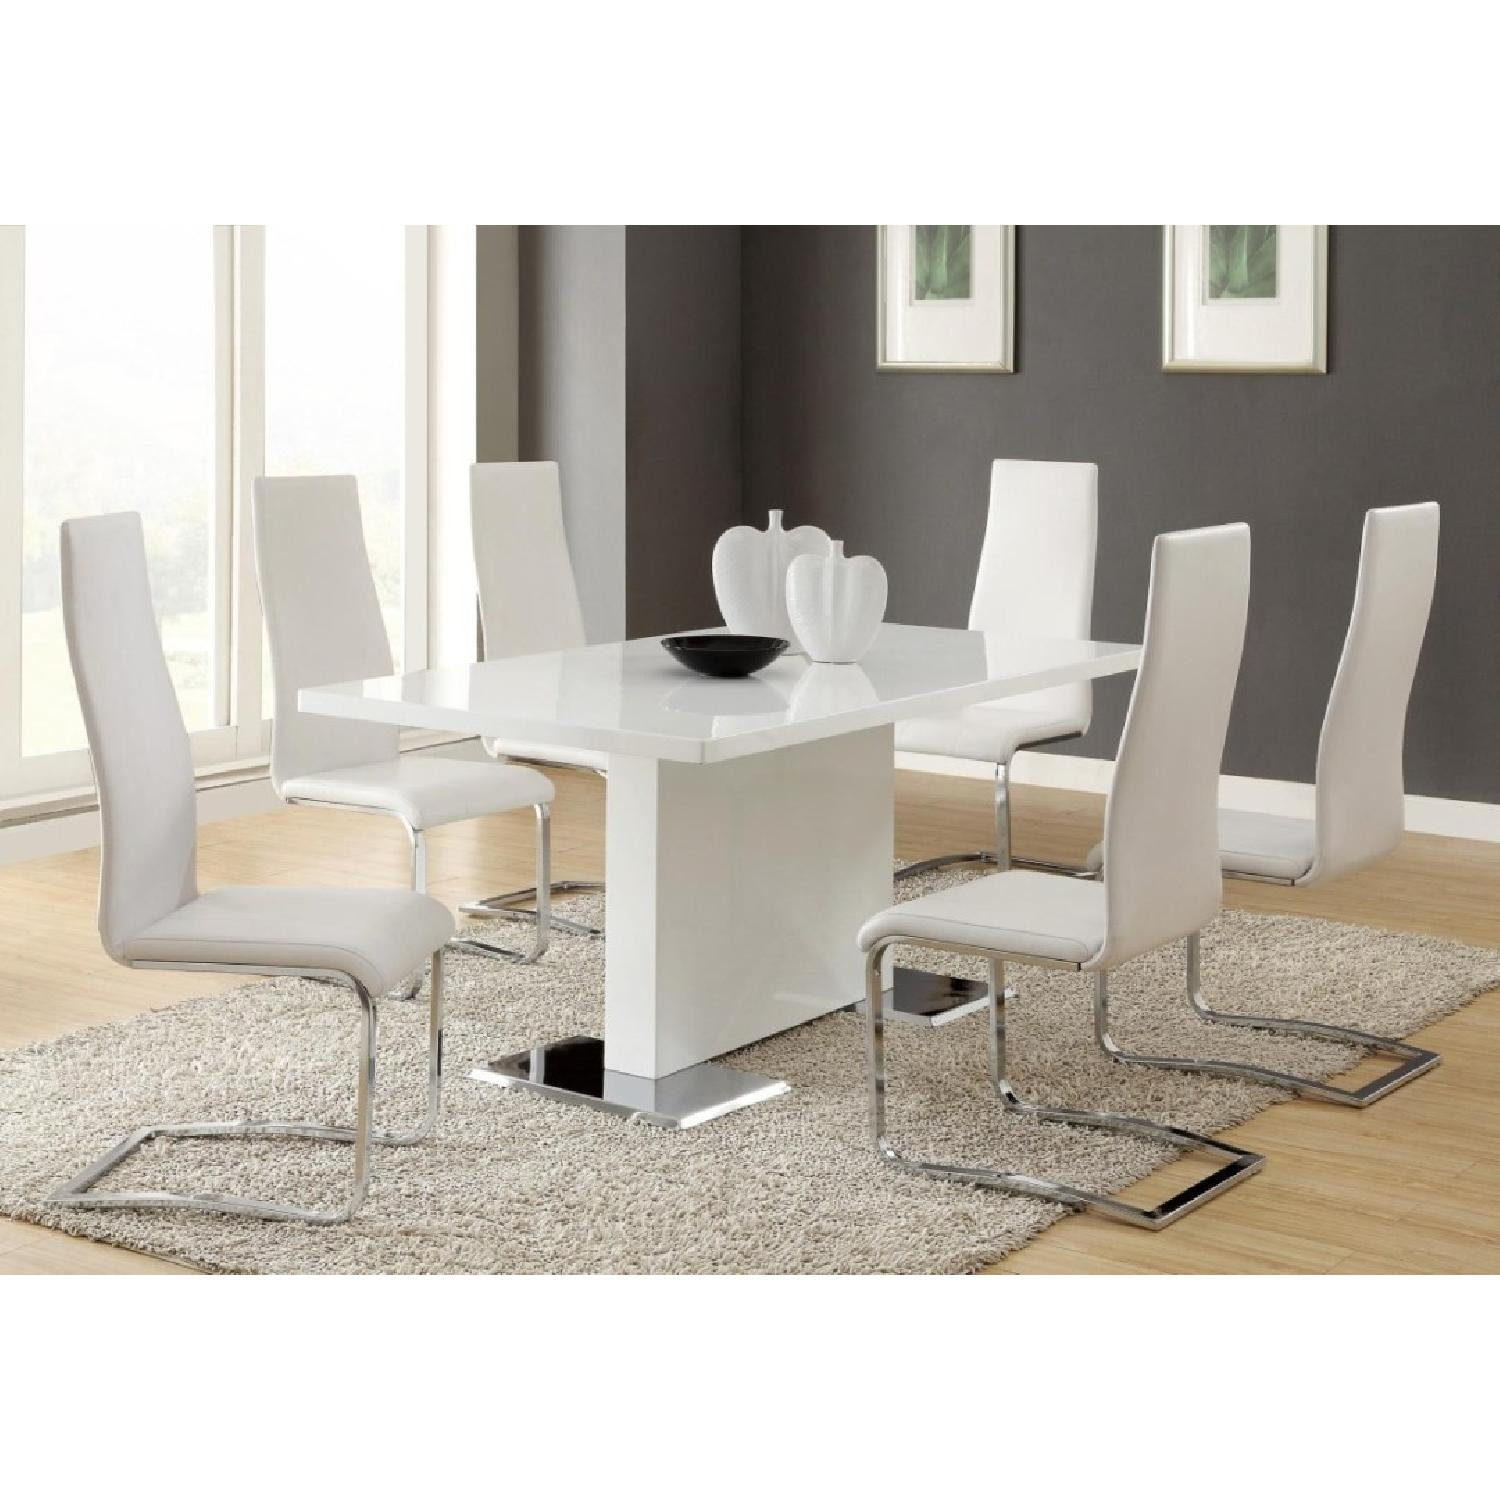 Modern White Dining Chairs w/ Solid Metal Legs - image-3